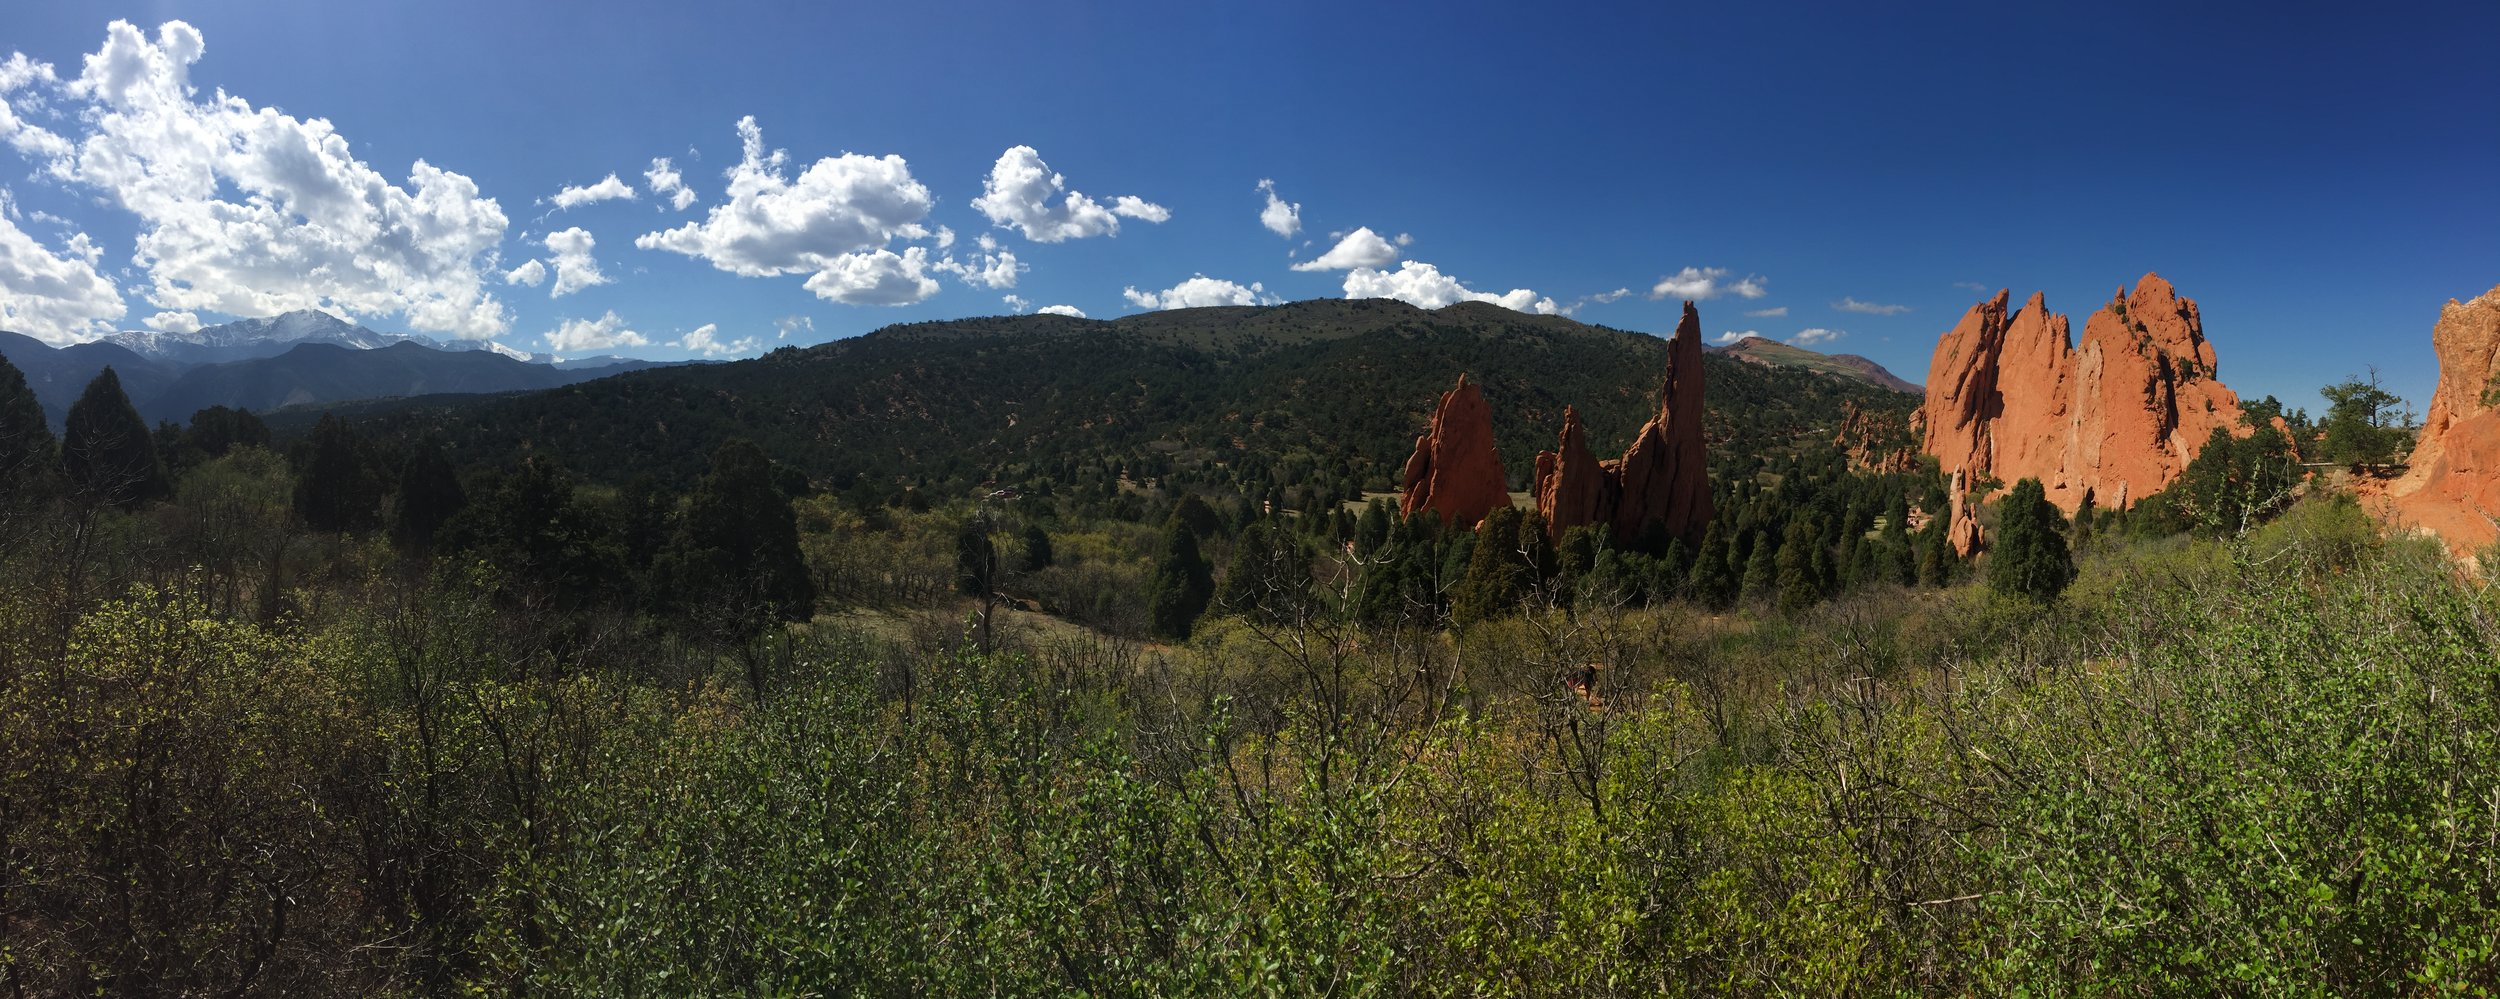 A view from the Garden of the Gods